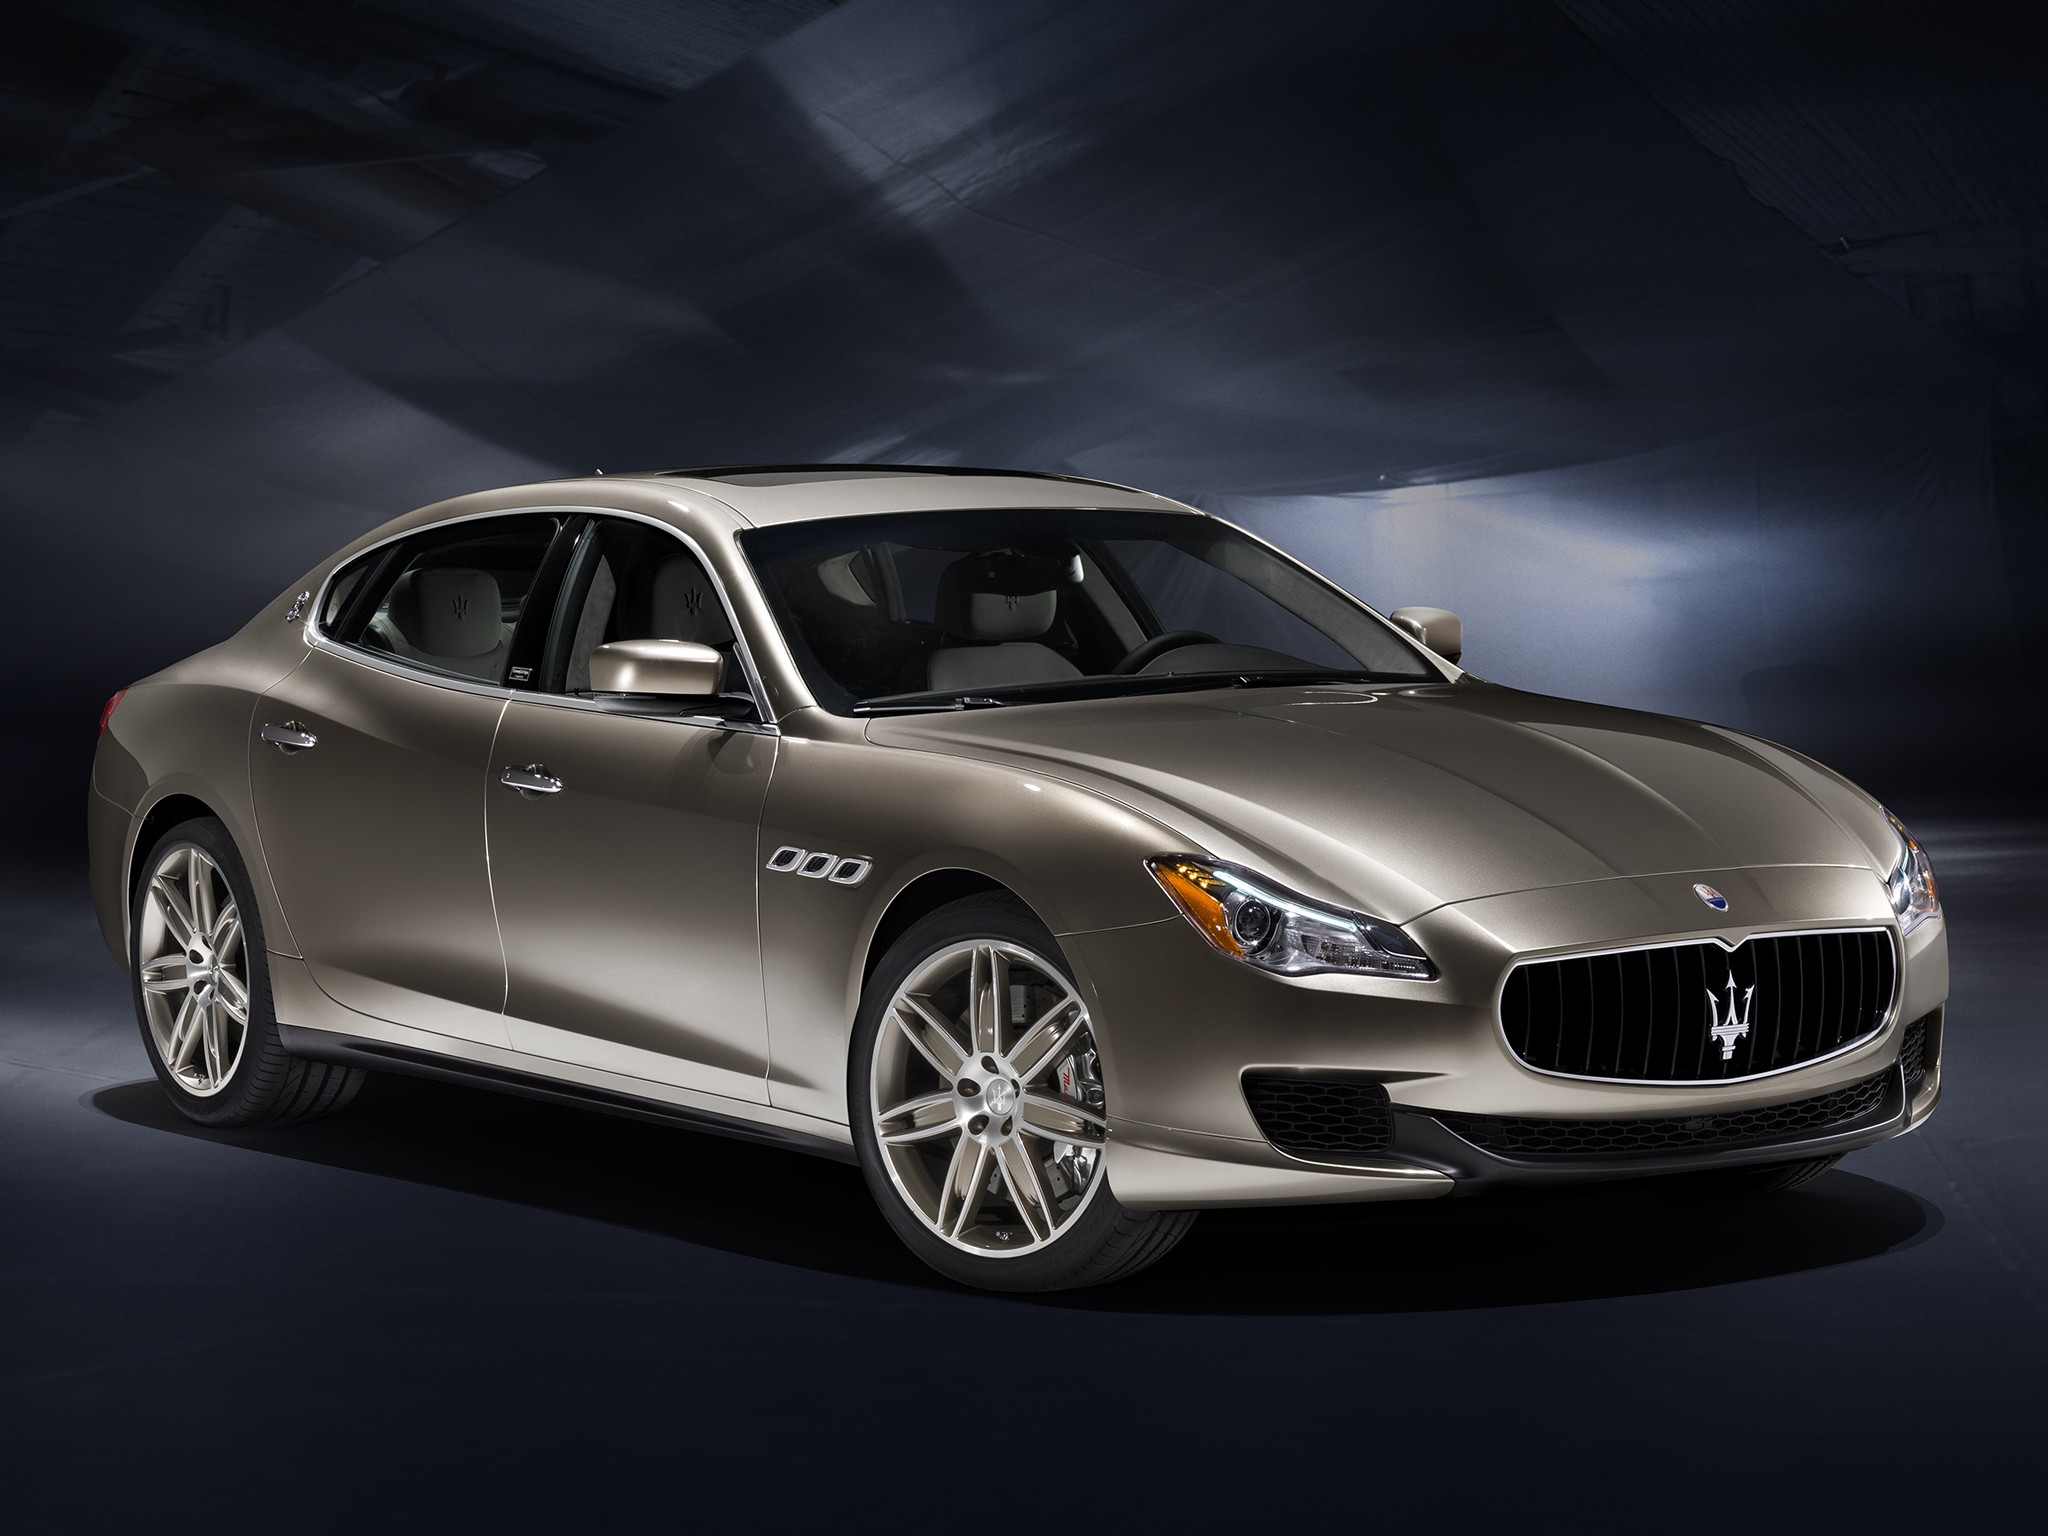 maserati quattroporte vi specs photos 2013 2014 2015 2016 autoevolution. Black Bedroom Furniture Sets. Home Design Ideas